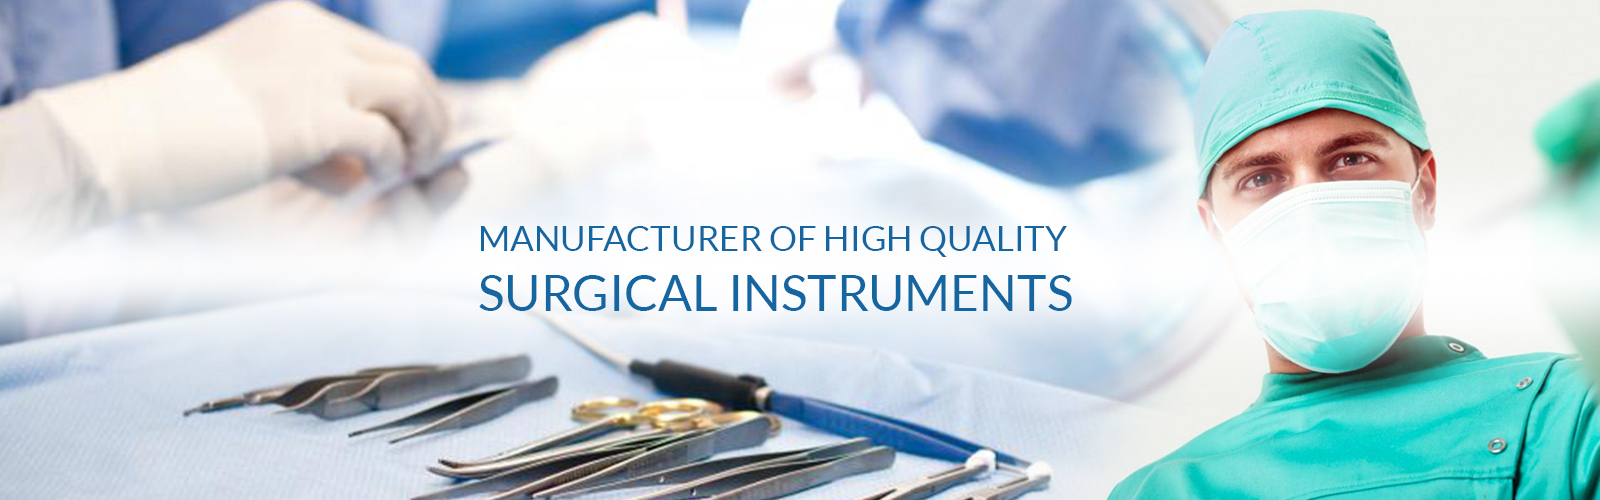 Alliance Surgical and Instruments